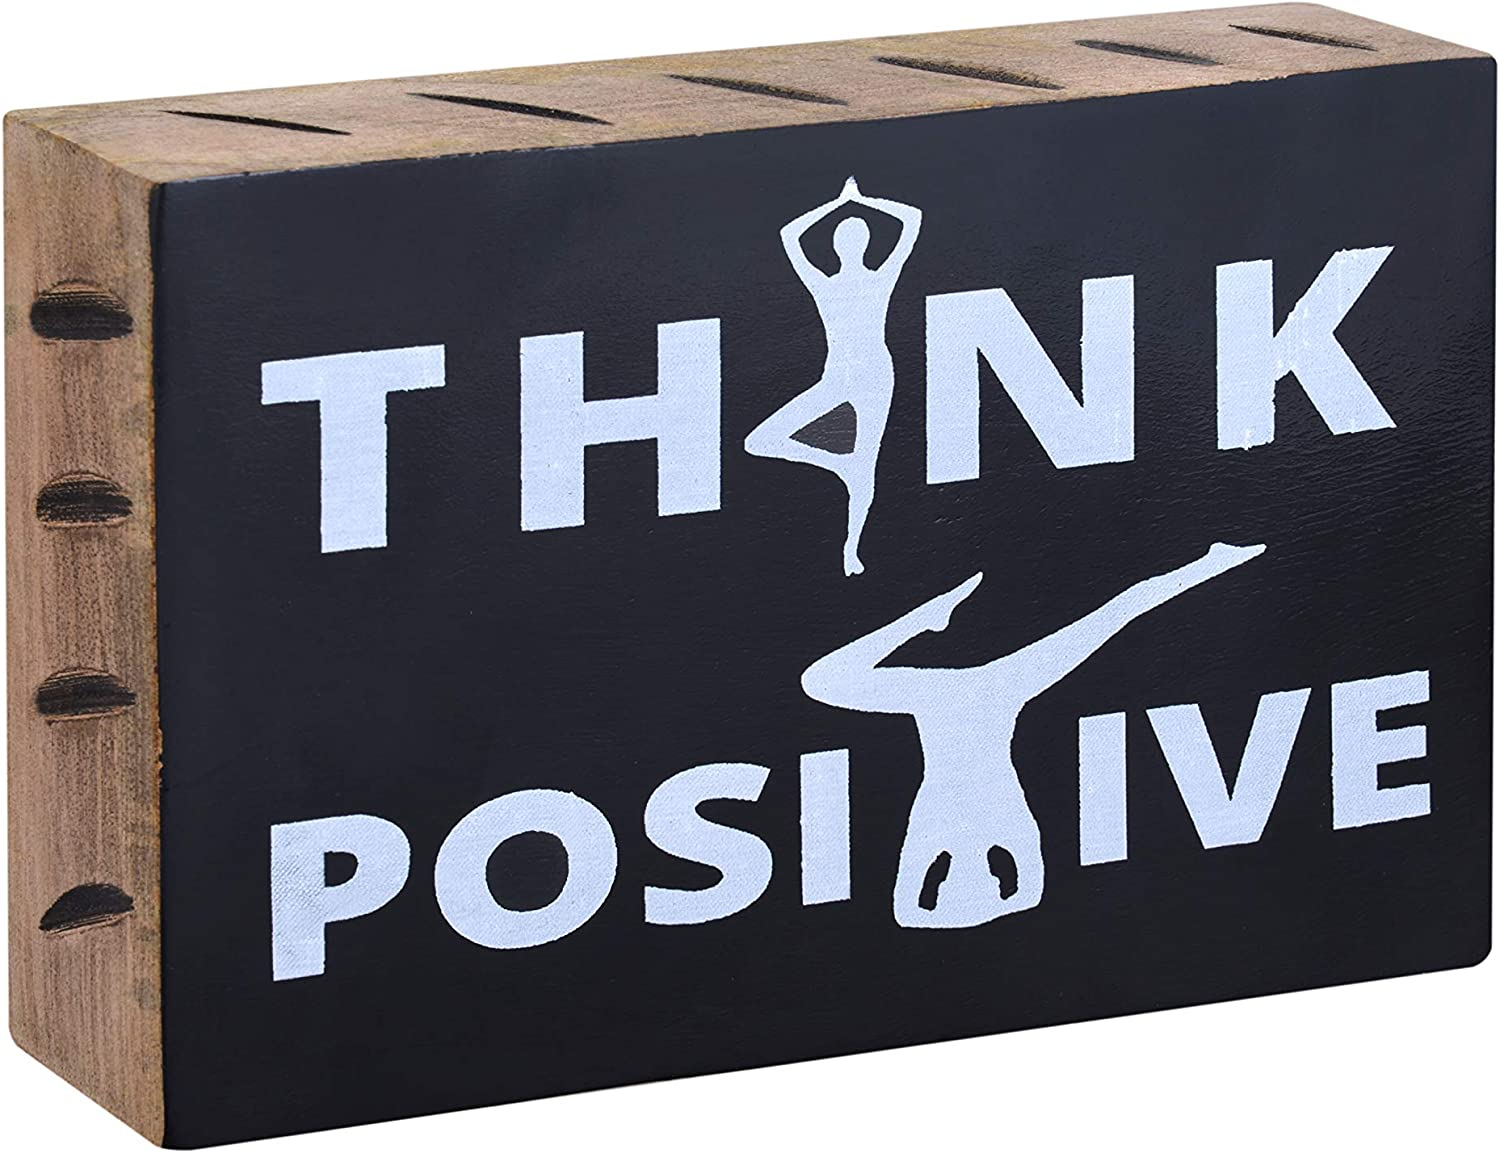 Wood Sign Decor - Think Positive Yoga Sign with Positive Thought Wood Sign - Yoga Room Decor, Meditation Room Decor - Wood Block Plaque Sign for Wall shelf Decor - Box Sign Decor for Home Office